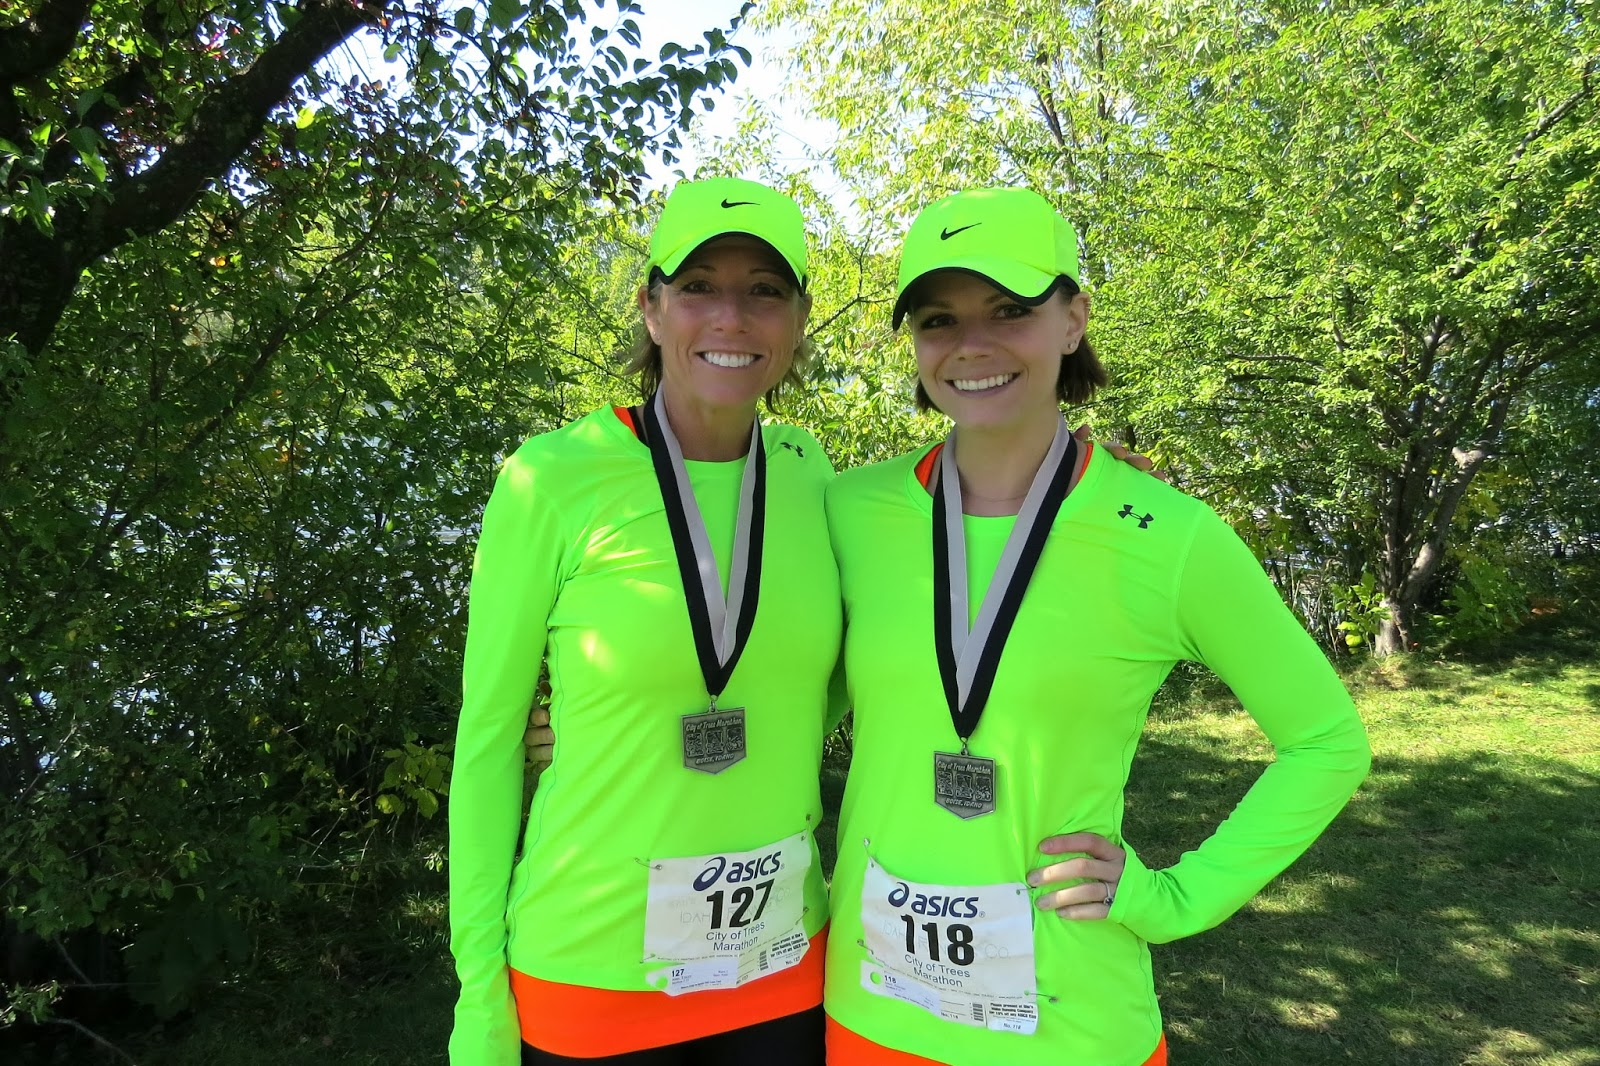 Mom and Daughter Marathoners, Bright Running Outfits